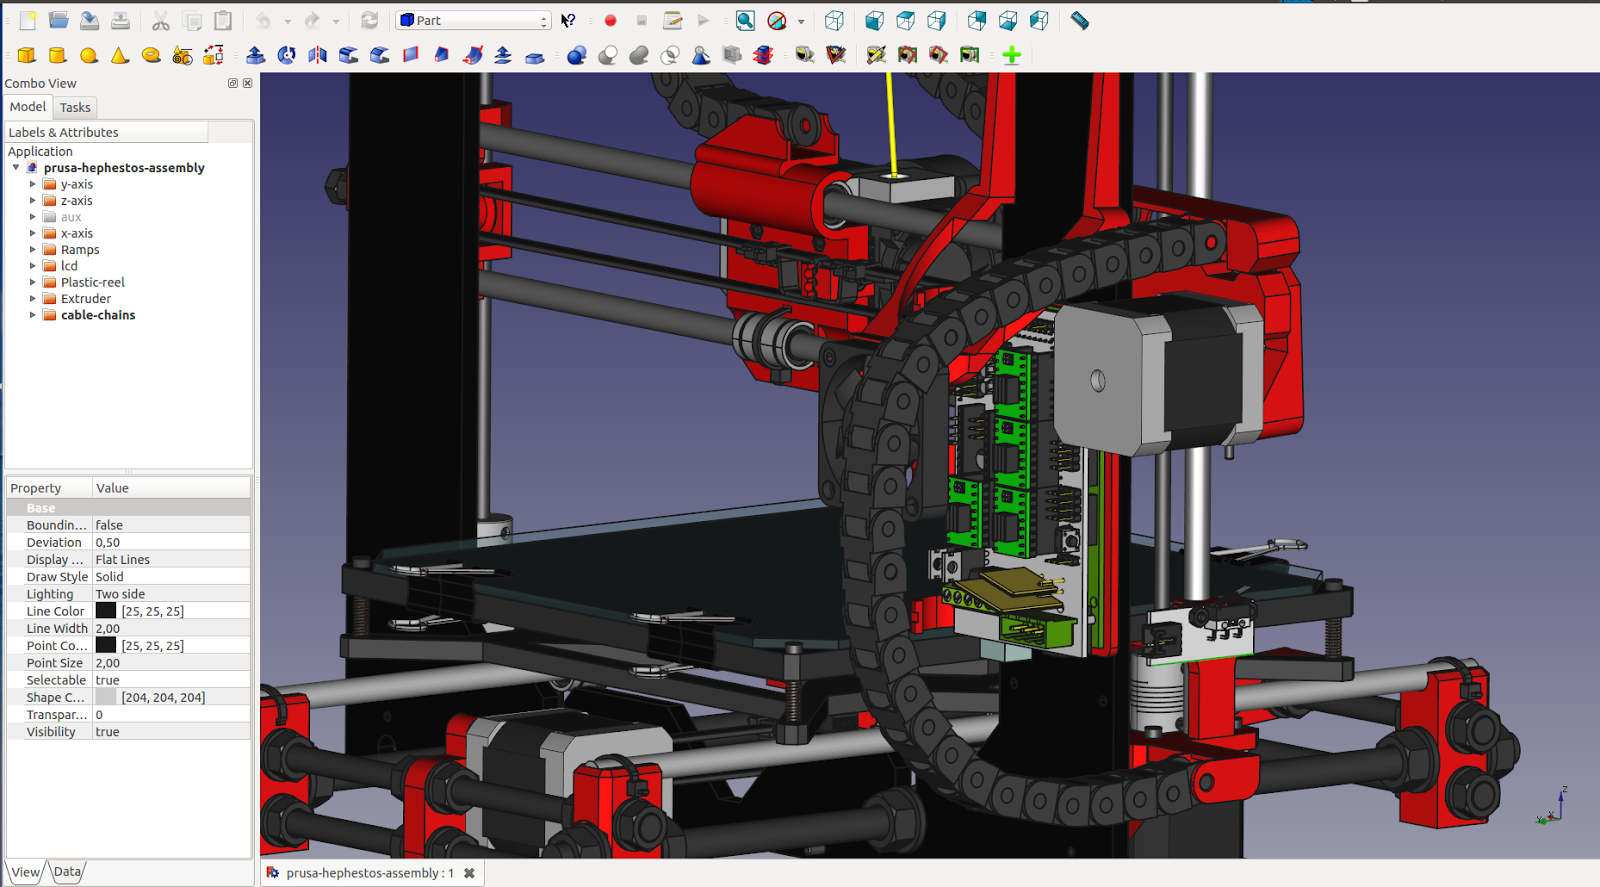 Brisbane 3D CAD under Linux - FreeCAD